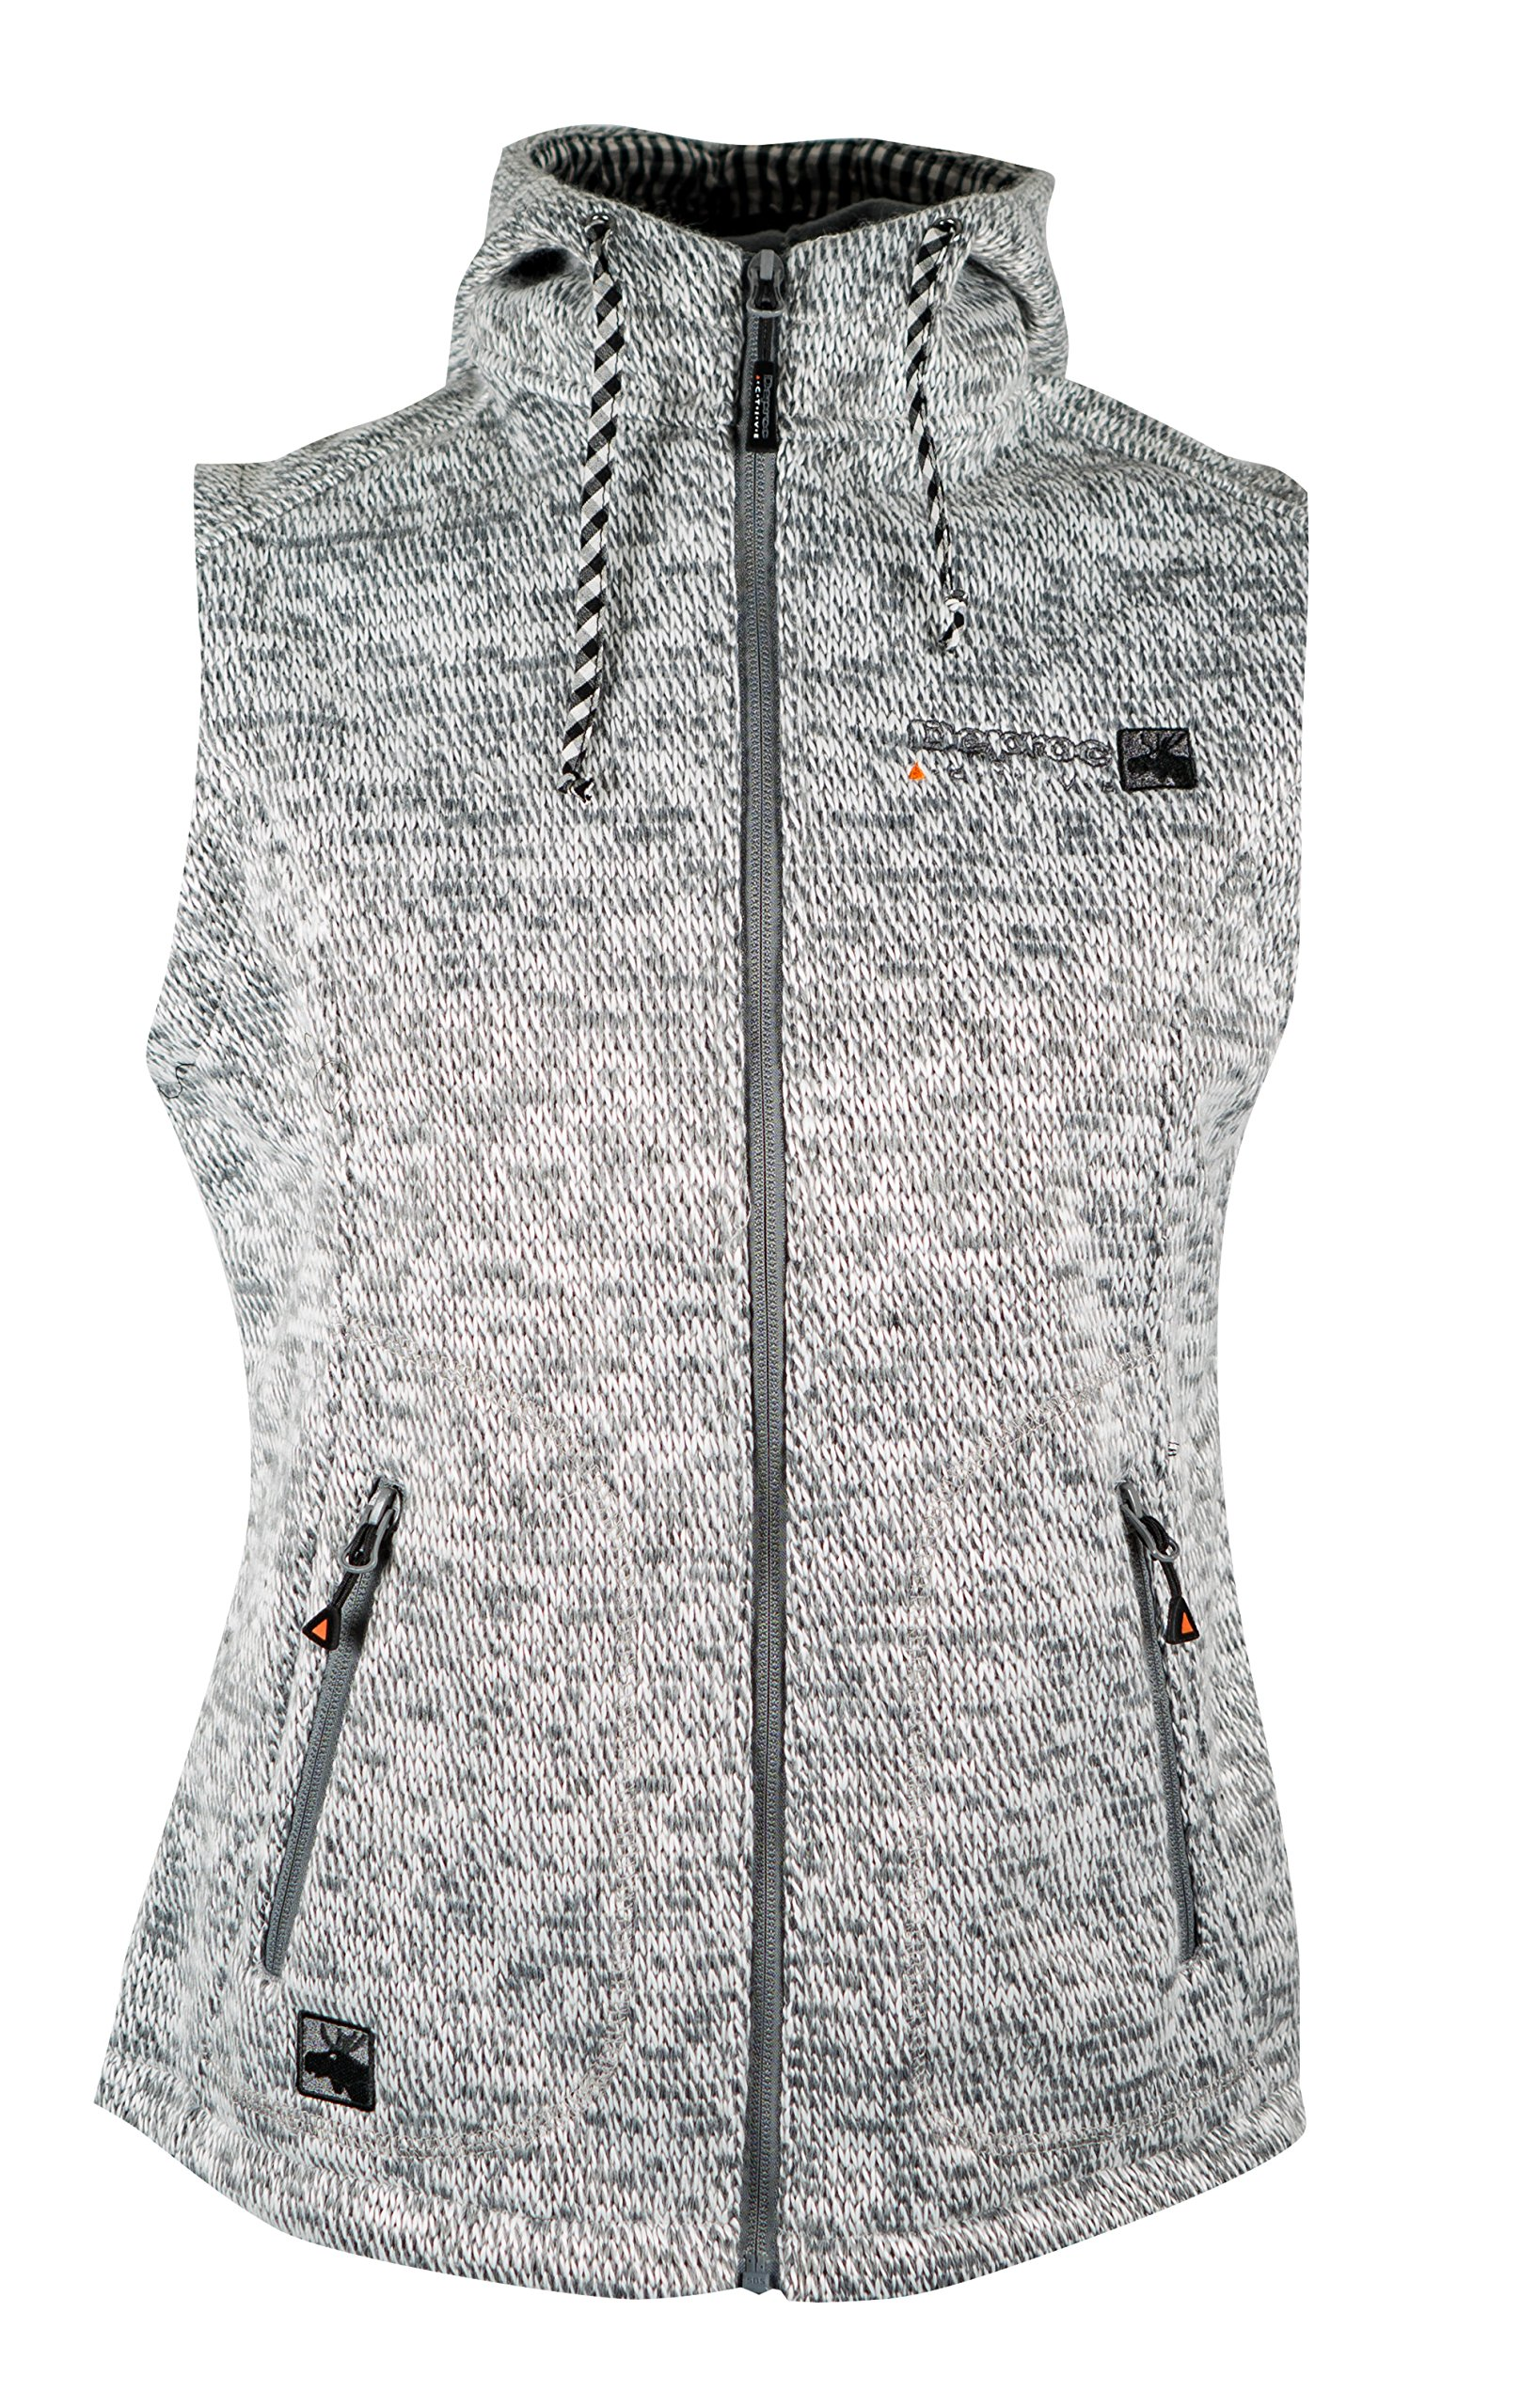 918oQRsZdjL - Deproc Women's WHITEFORD, Sweat Vest